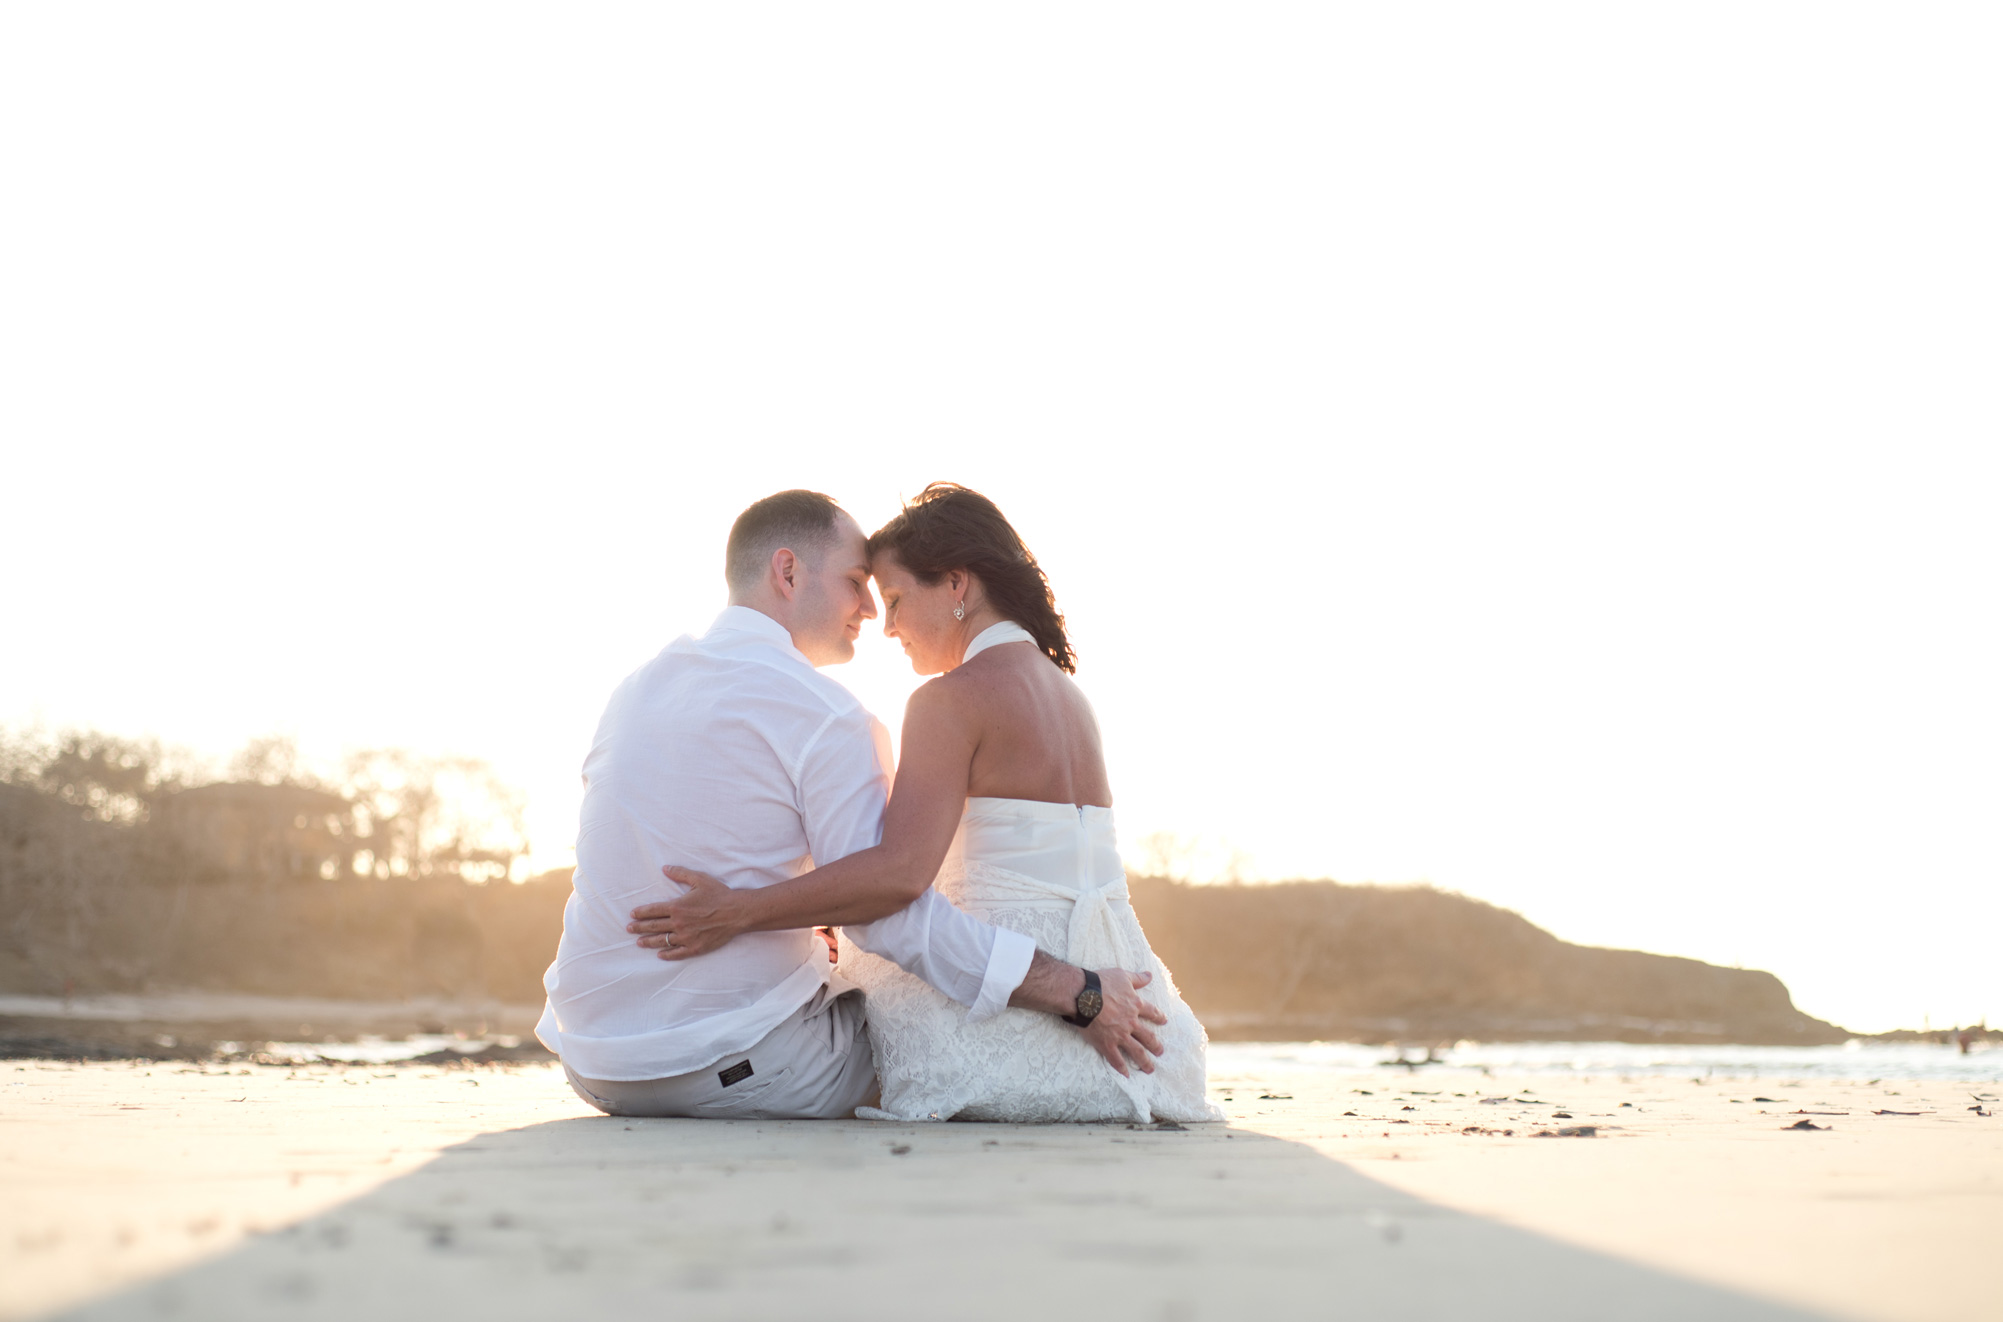 Honeymoon in Tamarindo Costa Rica. Photographed by Kristen M. Brown, Samba to the Sea Photography.